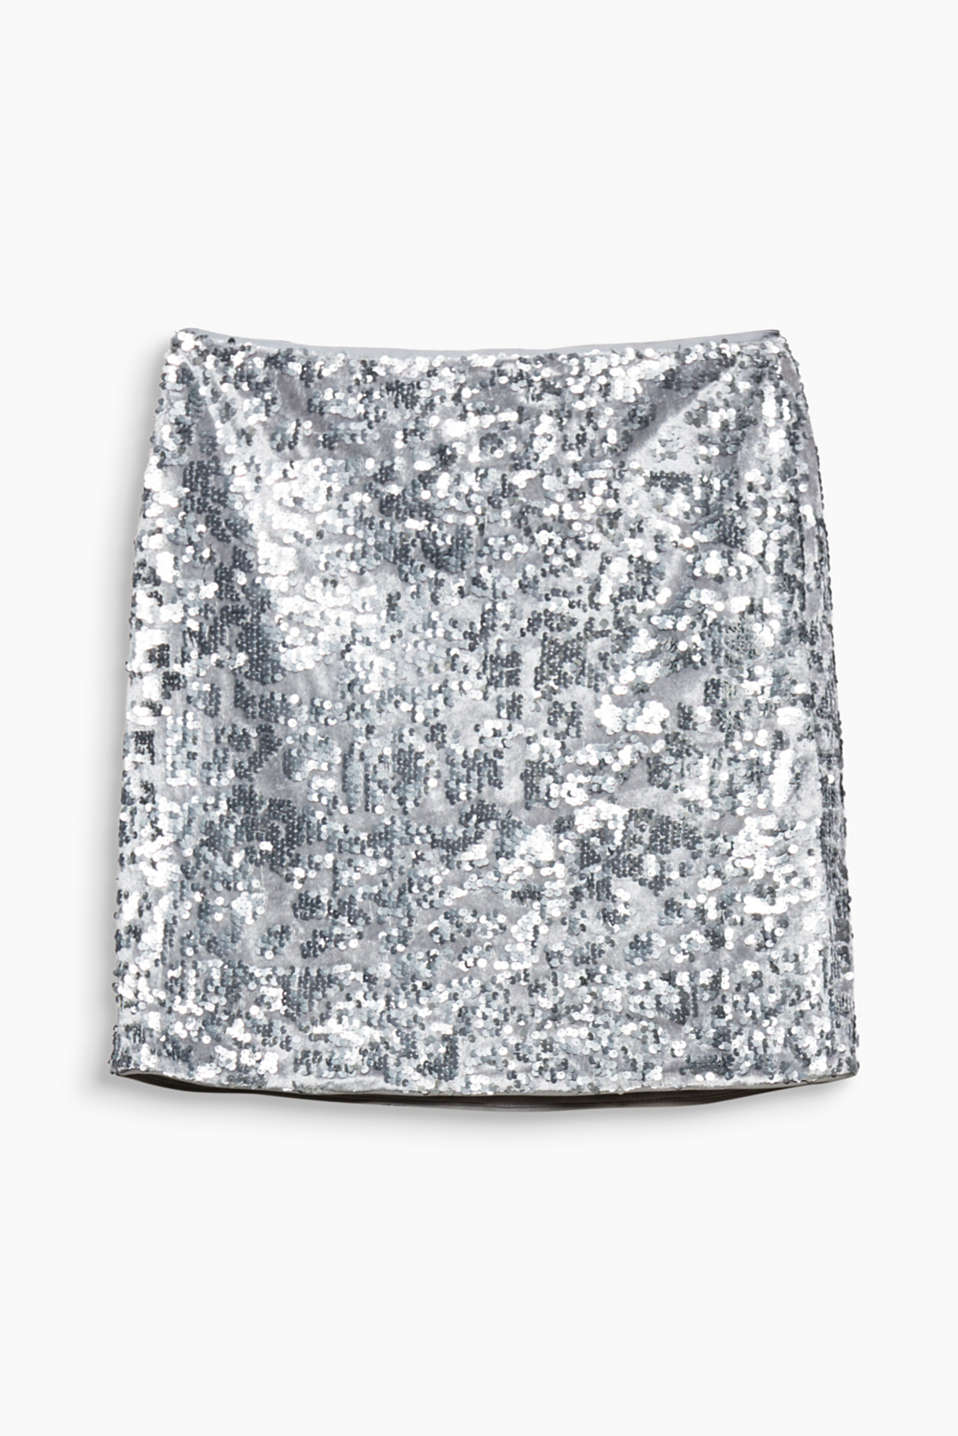 This mini skirt in soft velvet with a shimmering sequin trim is extravagant and sexy!